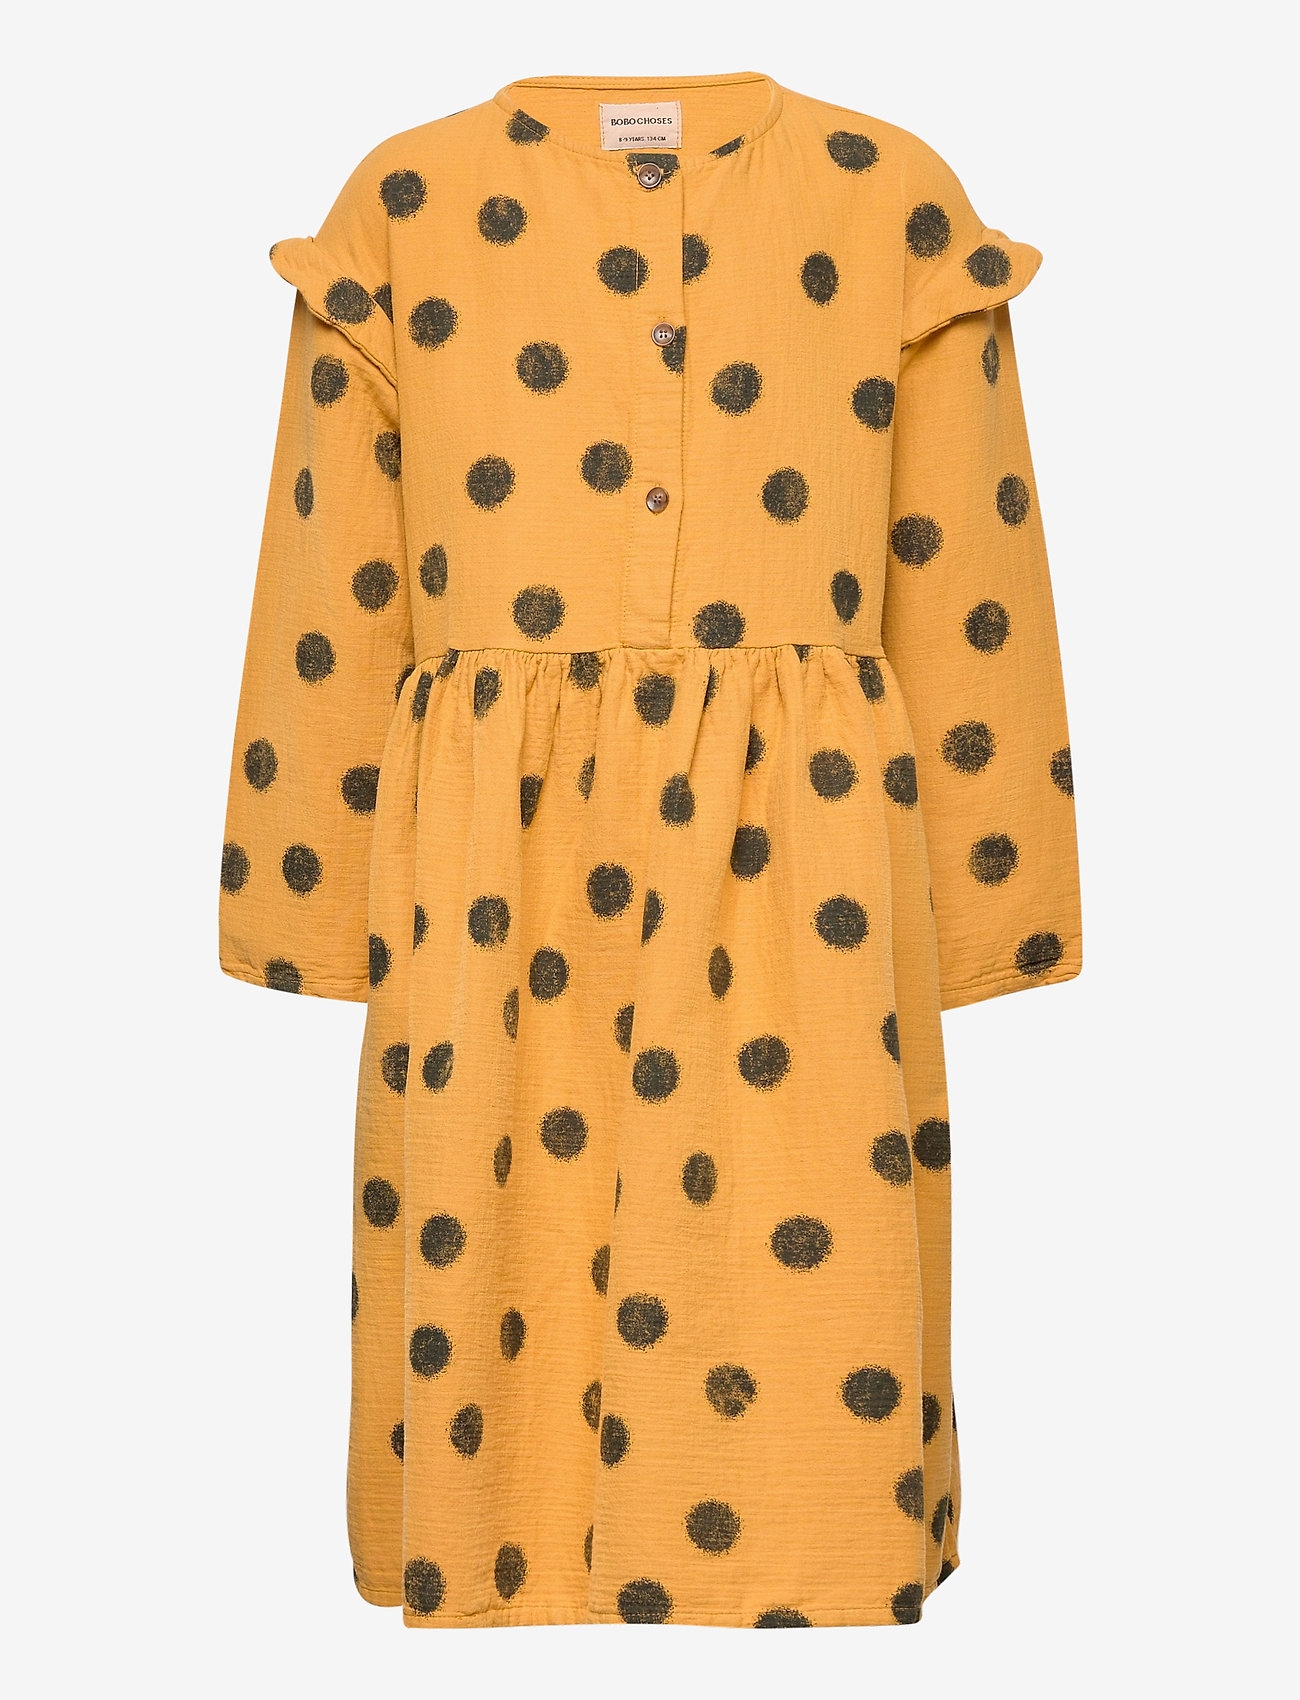 Spray Dots Woven Dress (Sunflower) (79 €) - Bobo Choses 91tmO